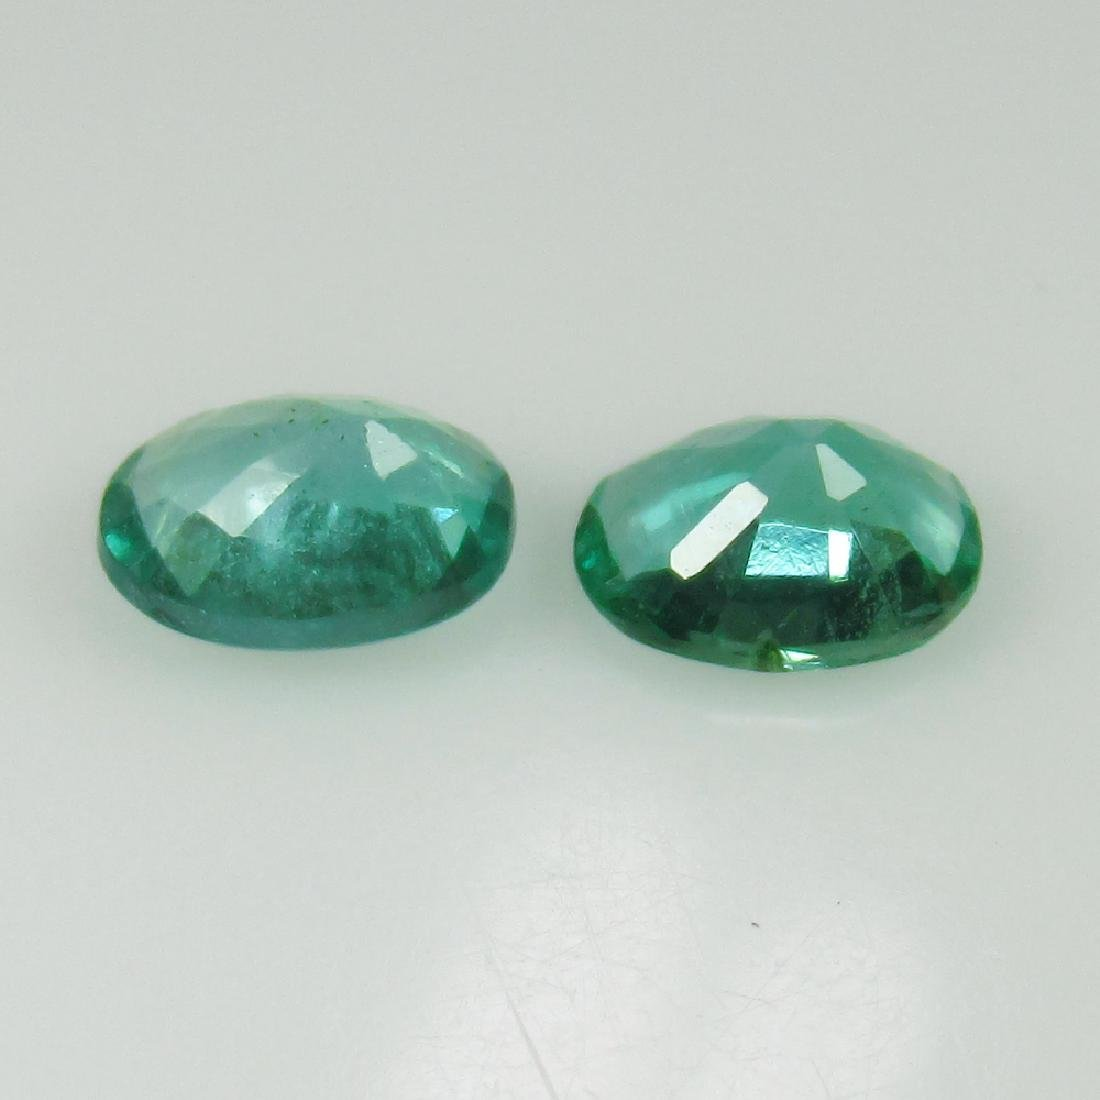 0.88 Ct Genuine Zambian Emerald Matching Oval Pair - 2